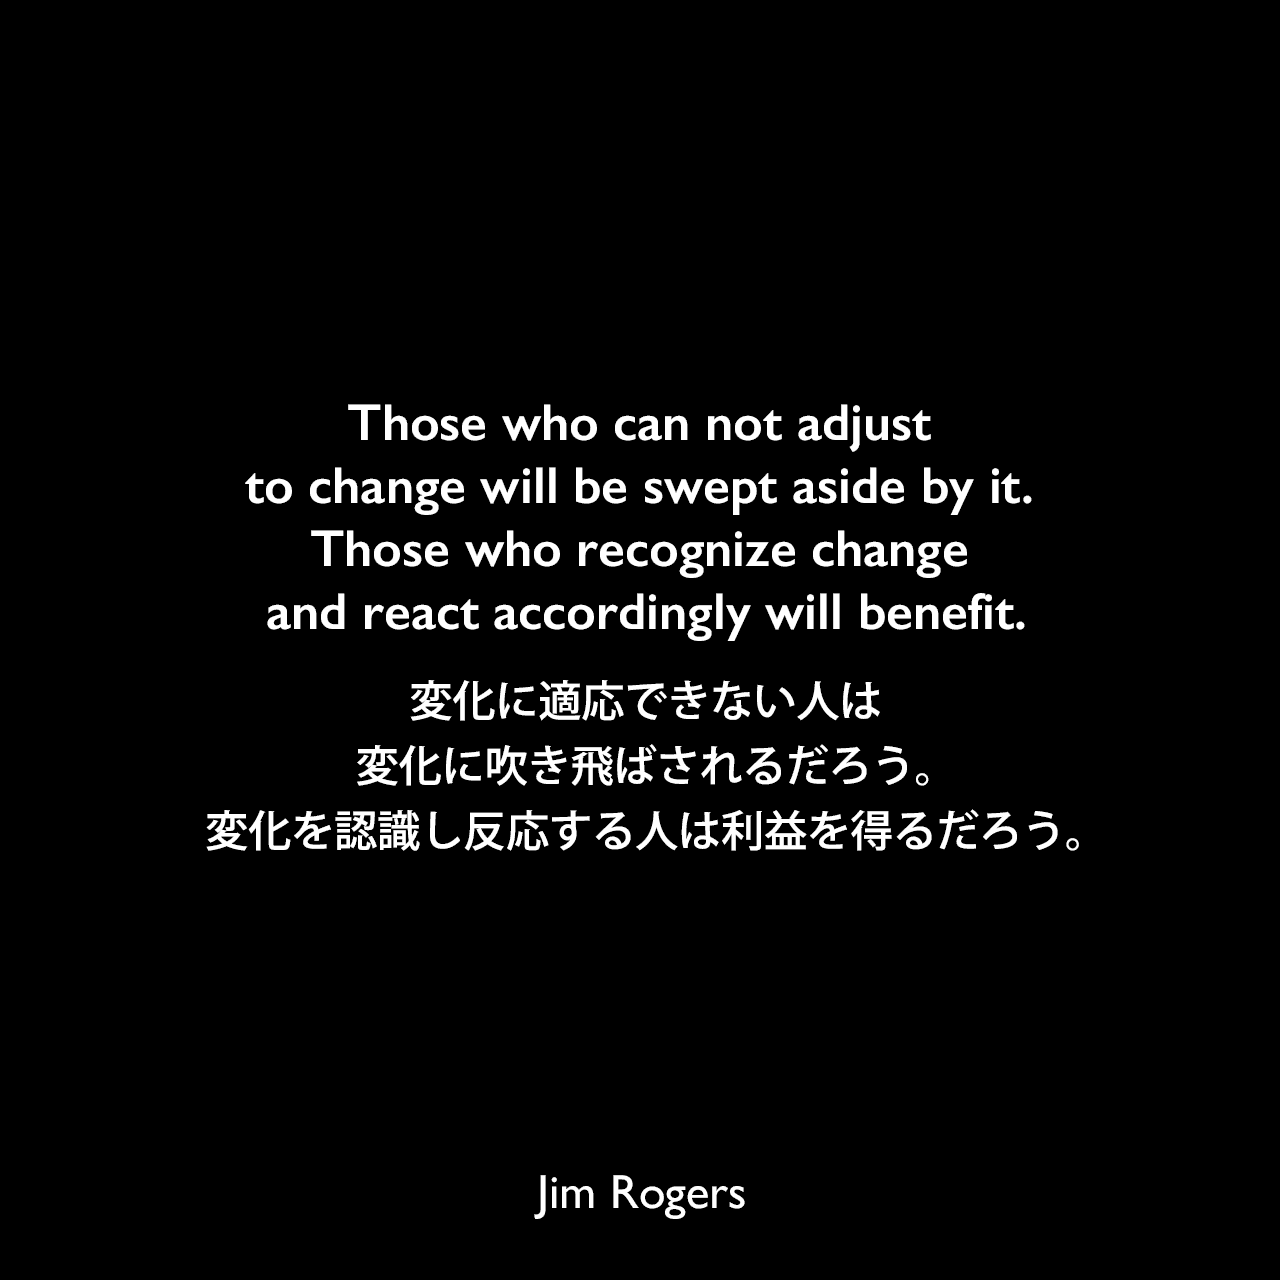 Those who can not adjust to change will be swept aside by it. Those who recognize change and react accordingly will benefit.変化に適応できない人は、変化に吹き飛ばされるだろう。変化を認識し反応する人は利益を得るだろう。Jim Rogers